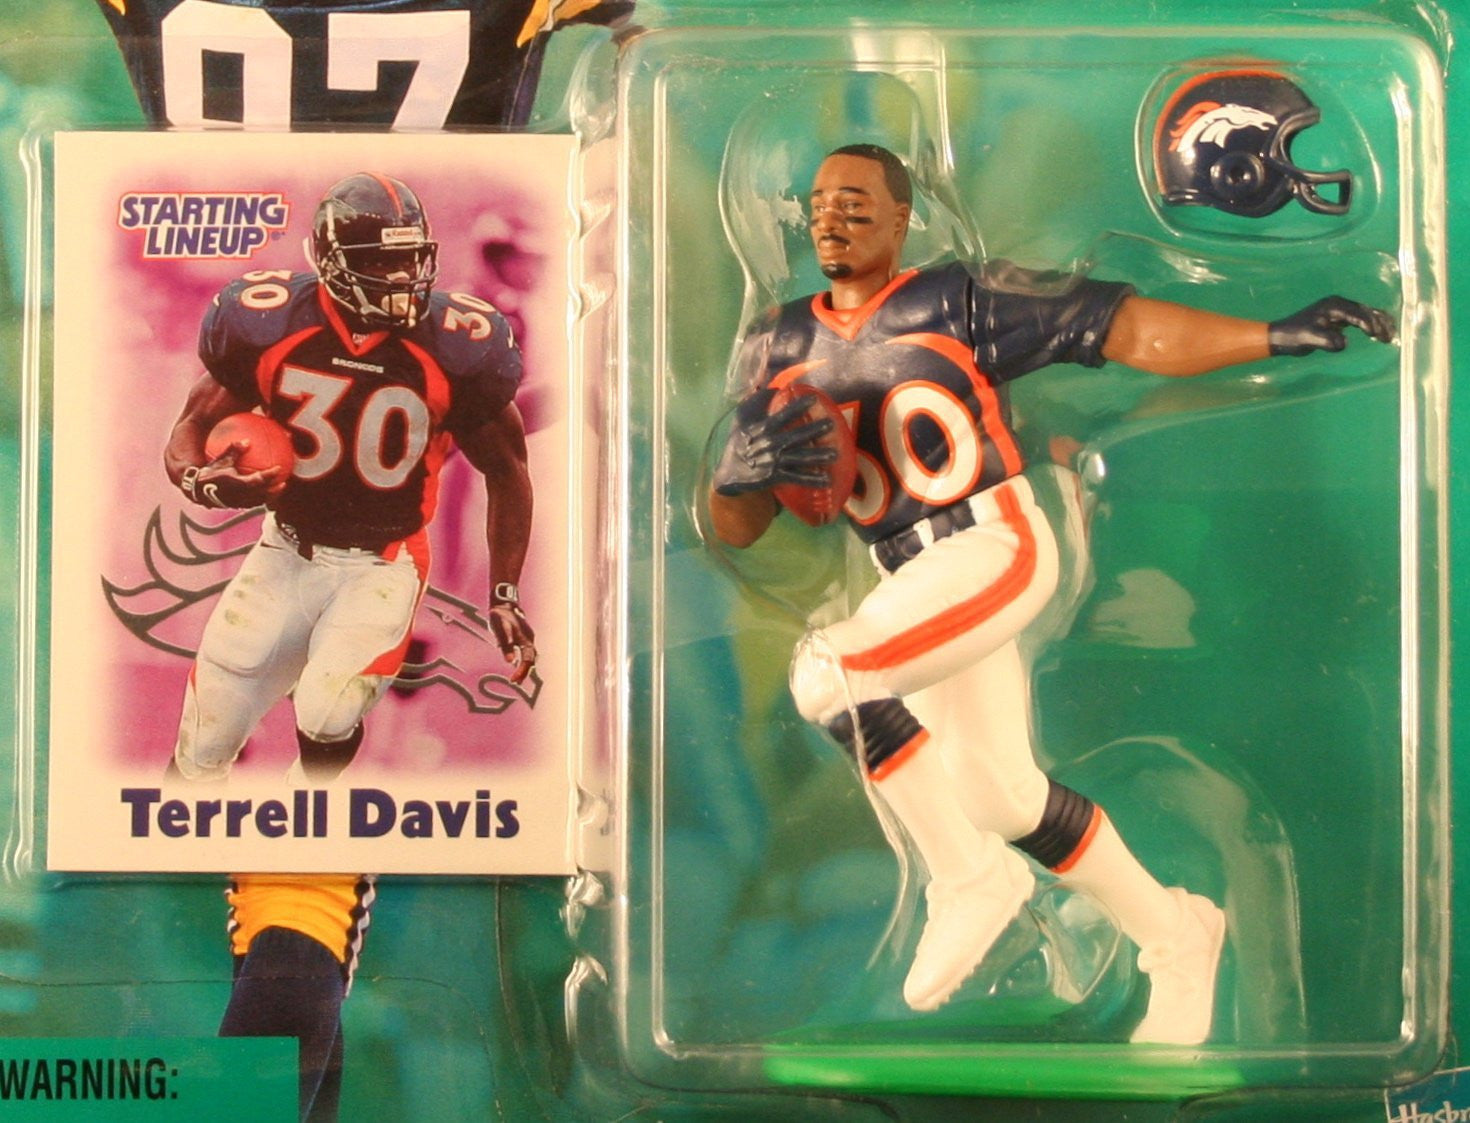 TERRELL DAVIS / DENVER BRONCOS 2000-2001 NFL Starting Lineup Action Figure & Exclusive NFL Collector Trading Card